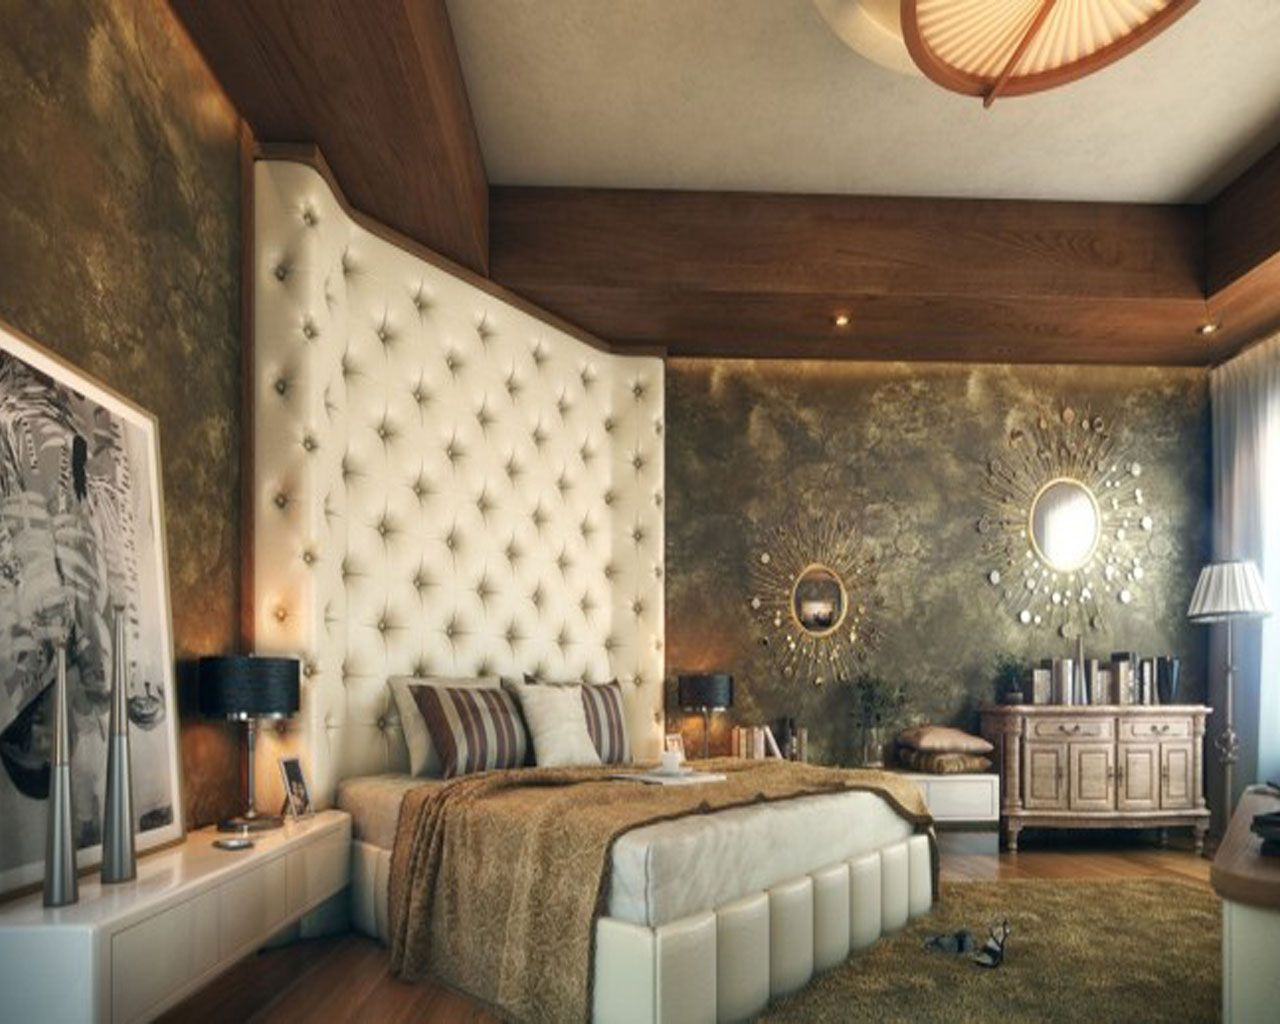 Bedroom decorating ideas feature wall - Wall Pictures For Home Walls Decoration Luxury Home Interior Design Ideas Indasro Com Walls